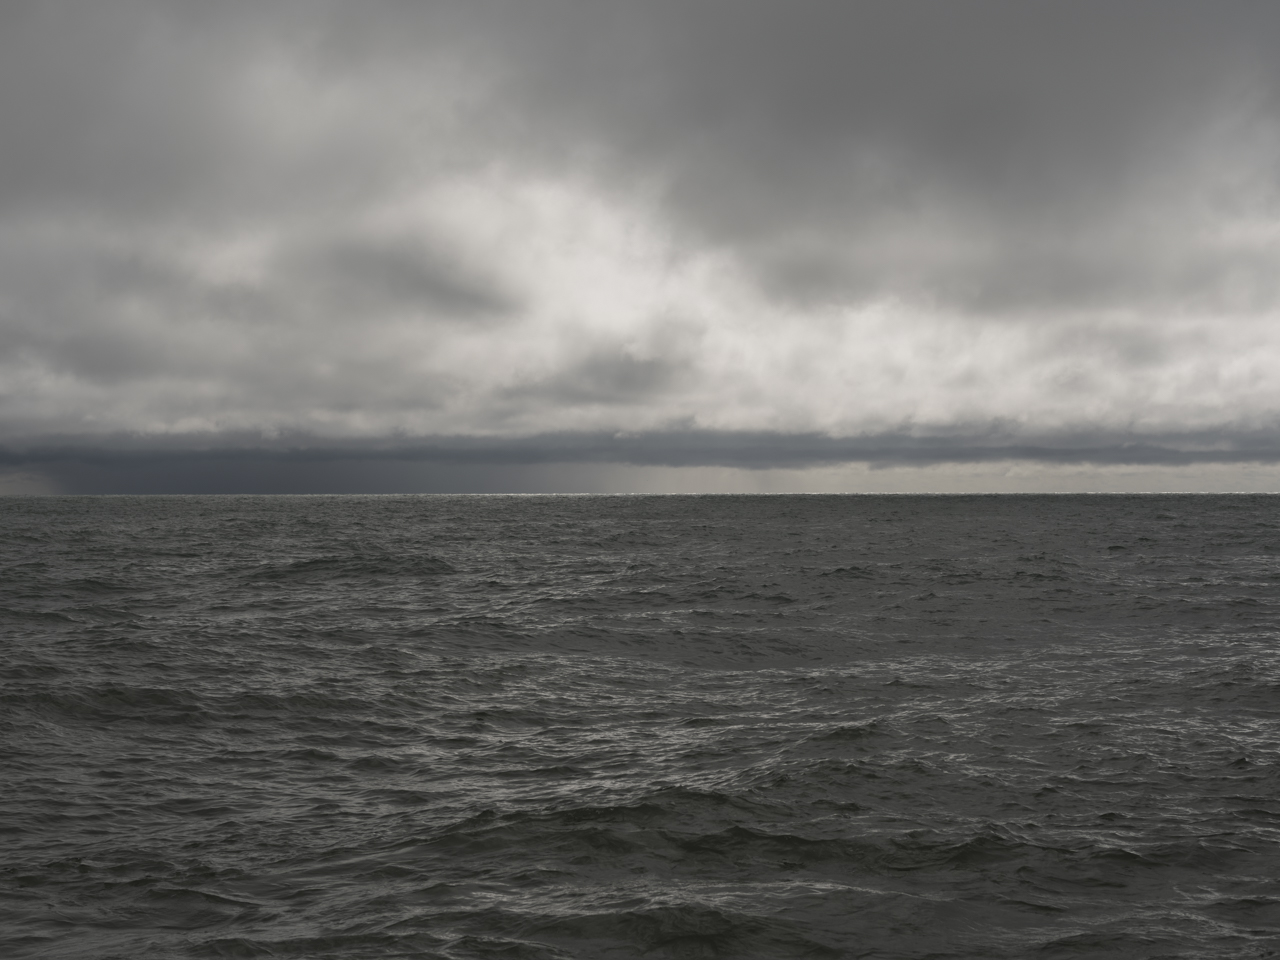 dark and deep waters are pushing against the shore while heavy clouds fill the sky